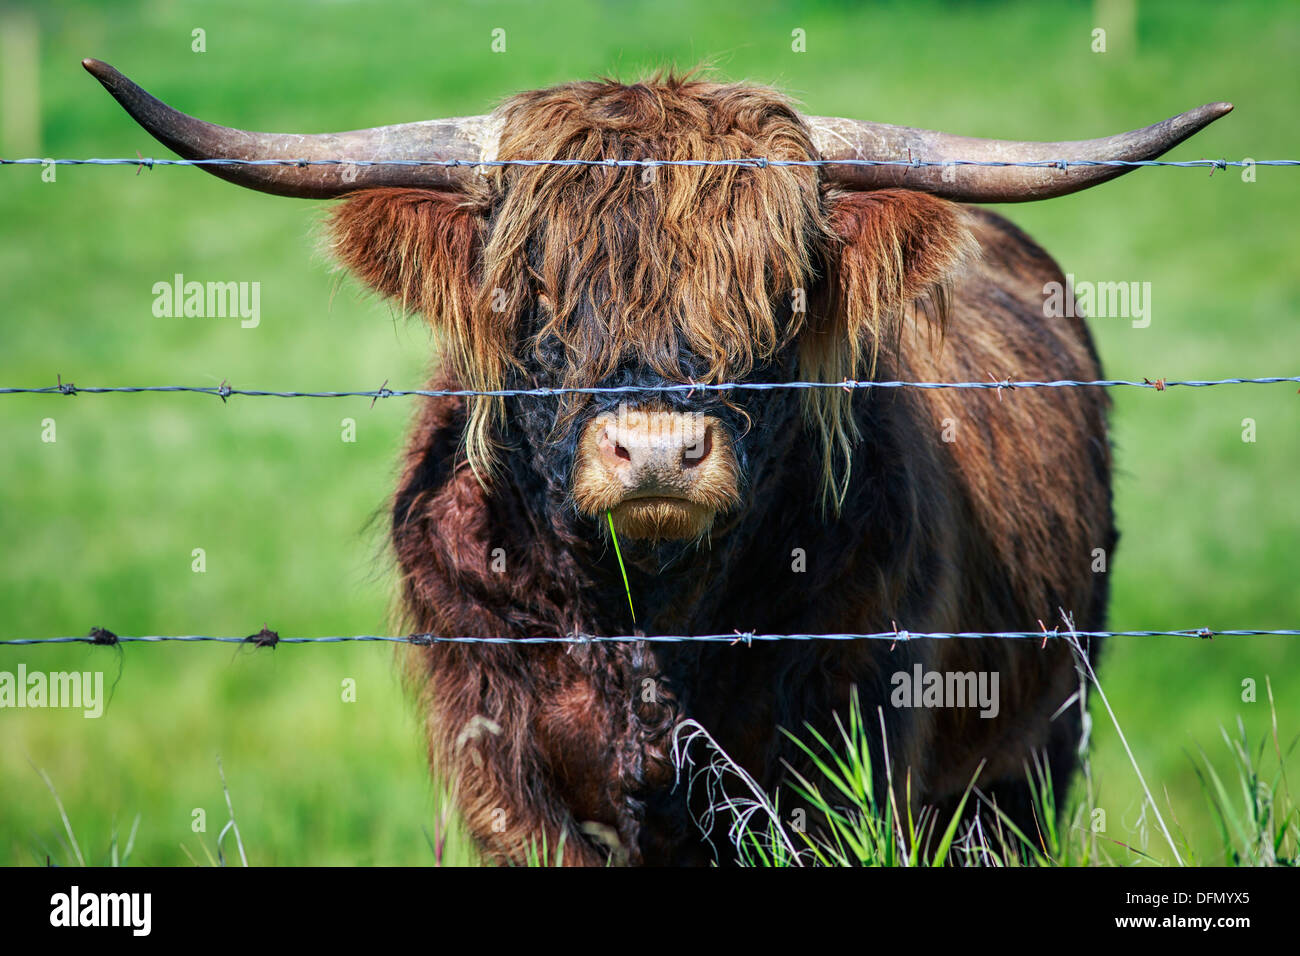 Portrait of Scottish Highland Cattle behind barbed wire, Kananaskis Country, Alberta, Canada - Stock Image